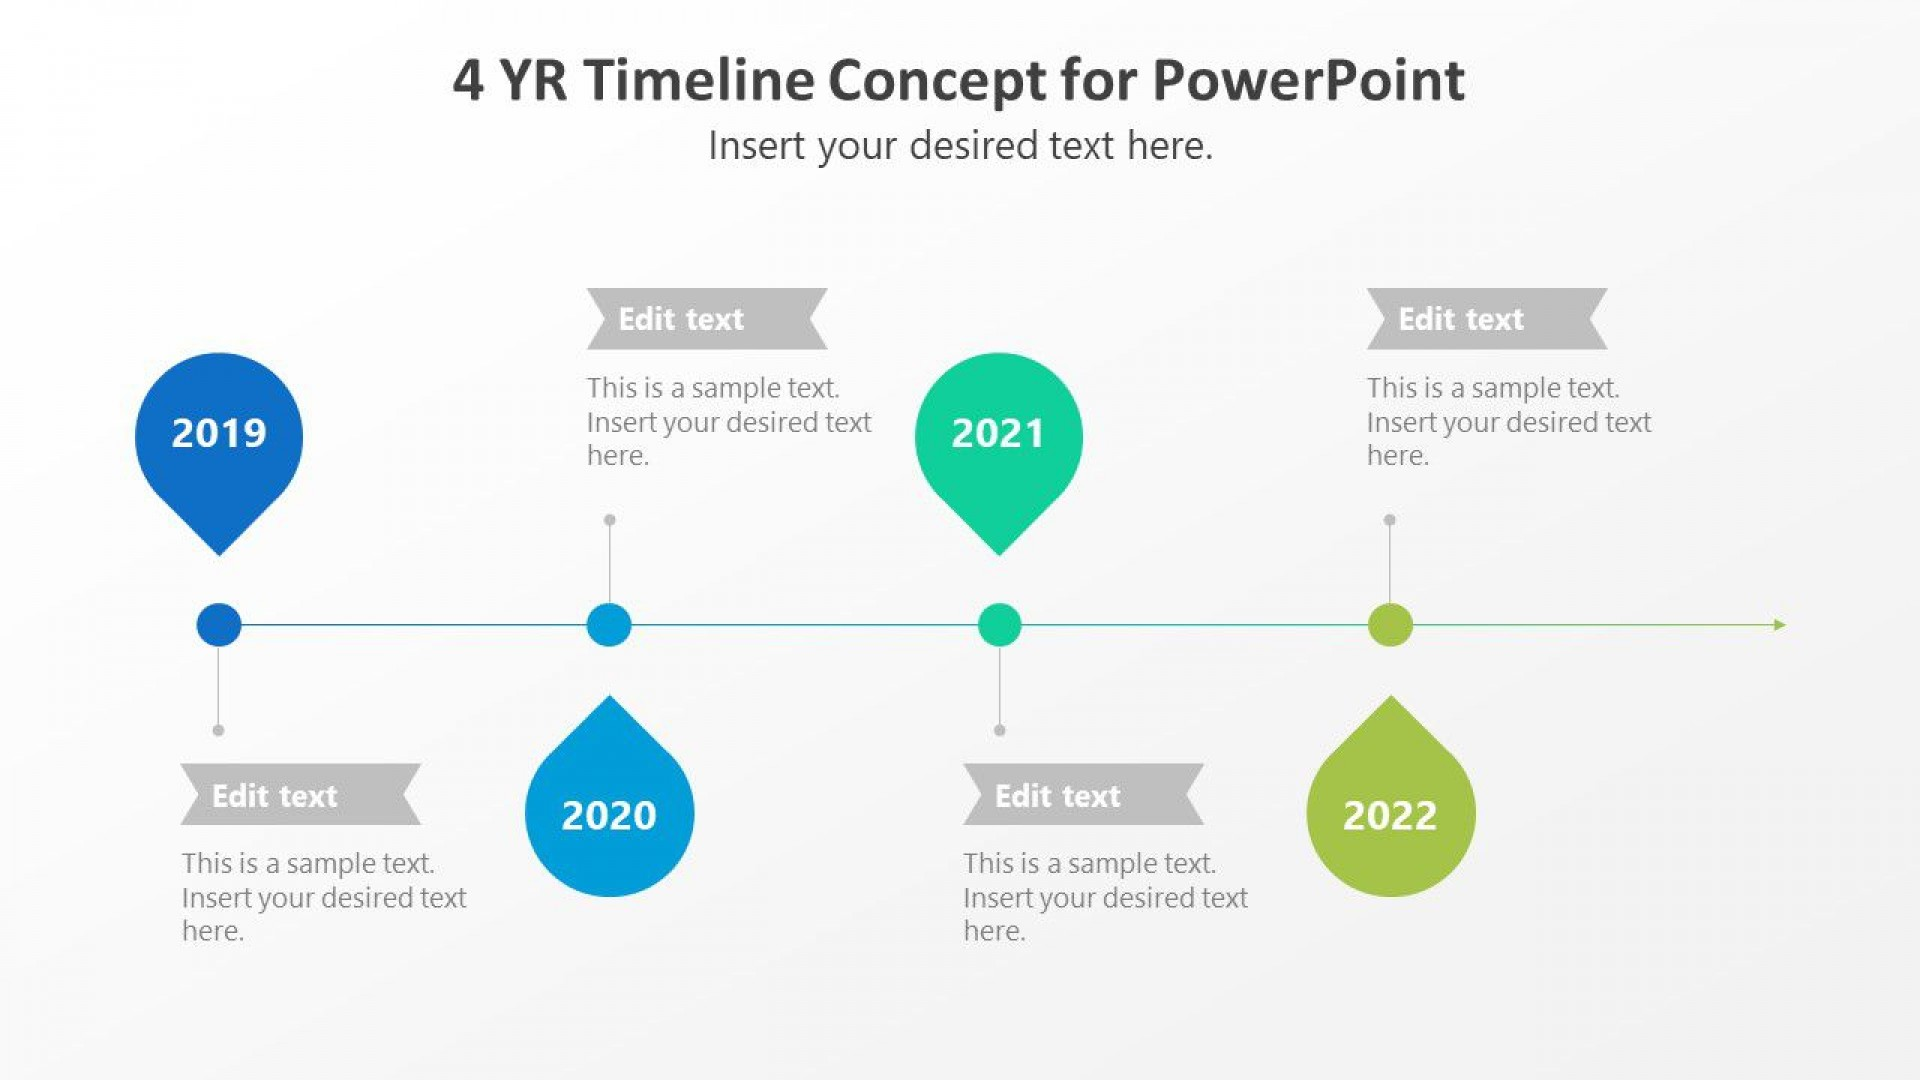 005 Formidable Timeline Template Powerpoint Download Design  Editable Downloadable Project Ppt Free1920